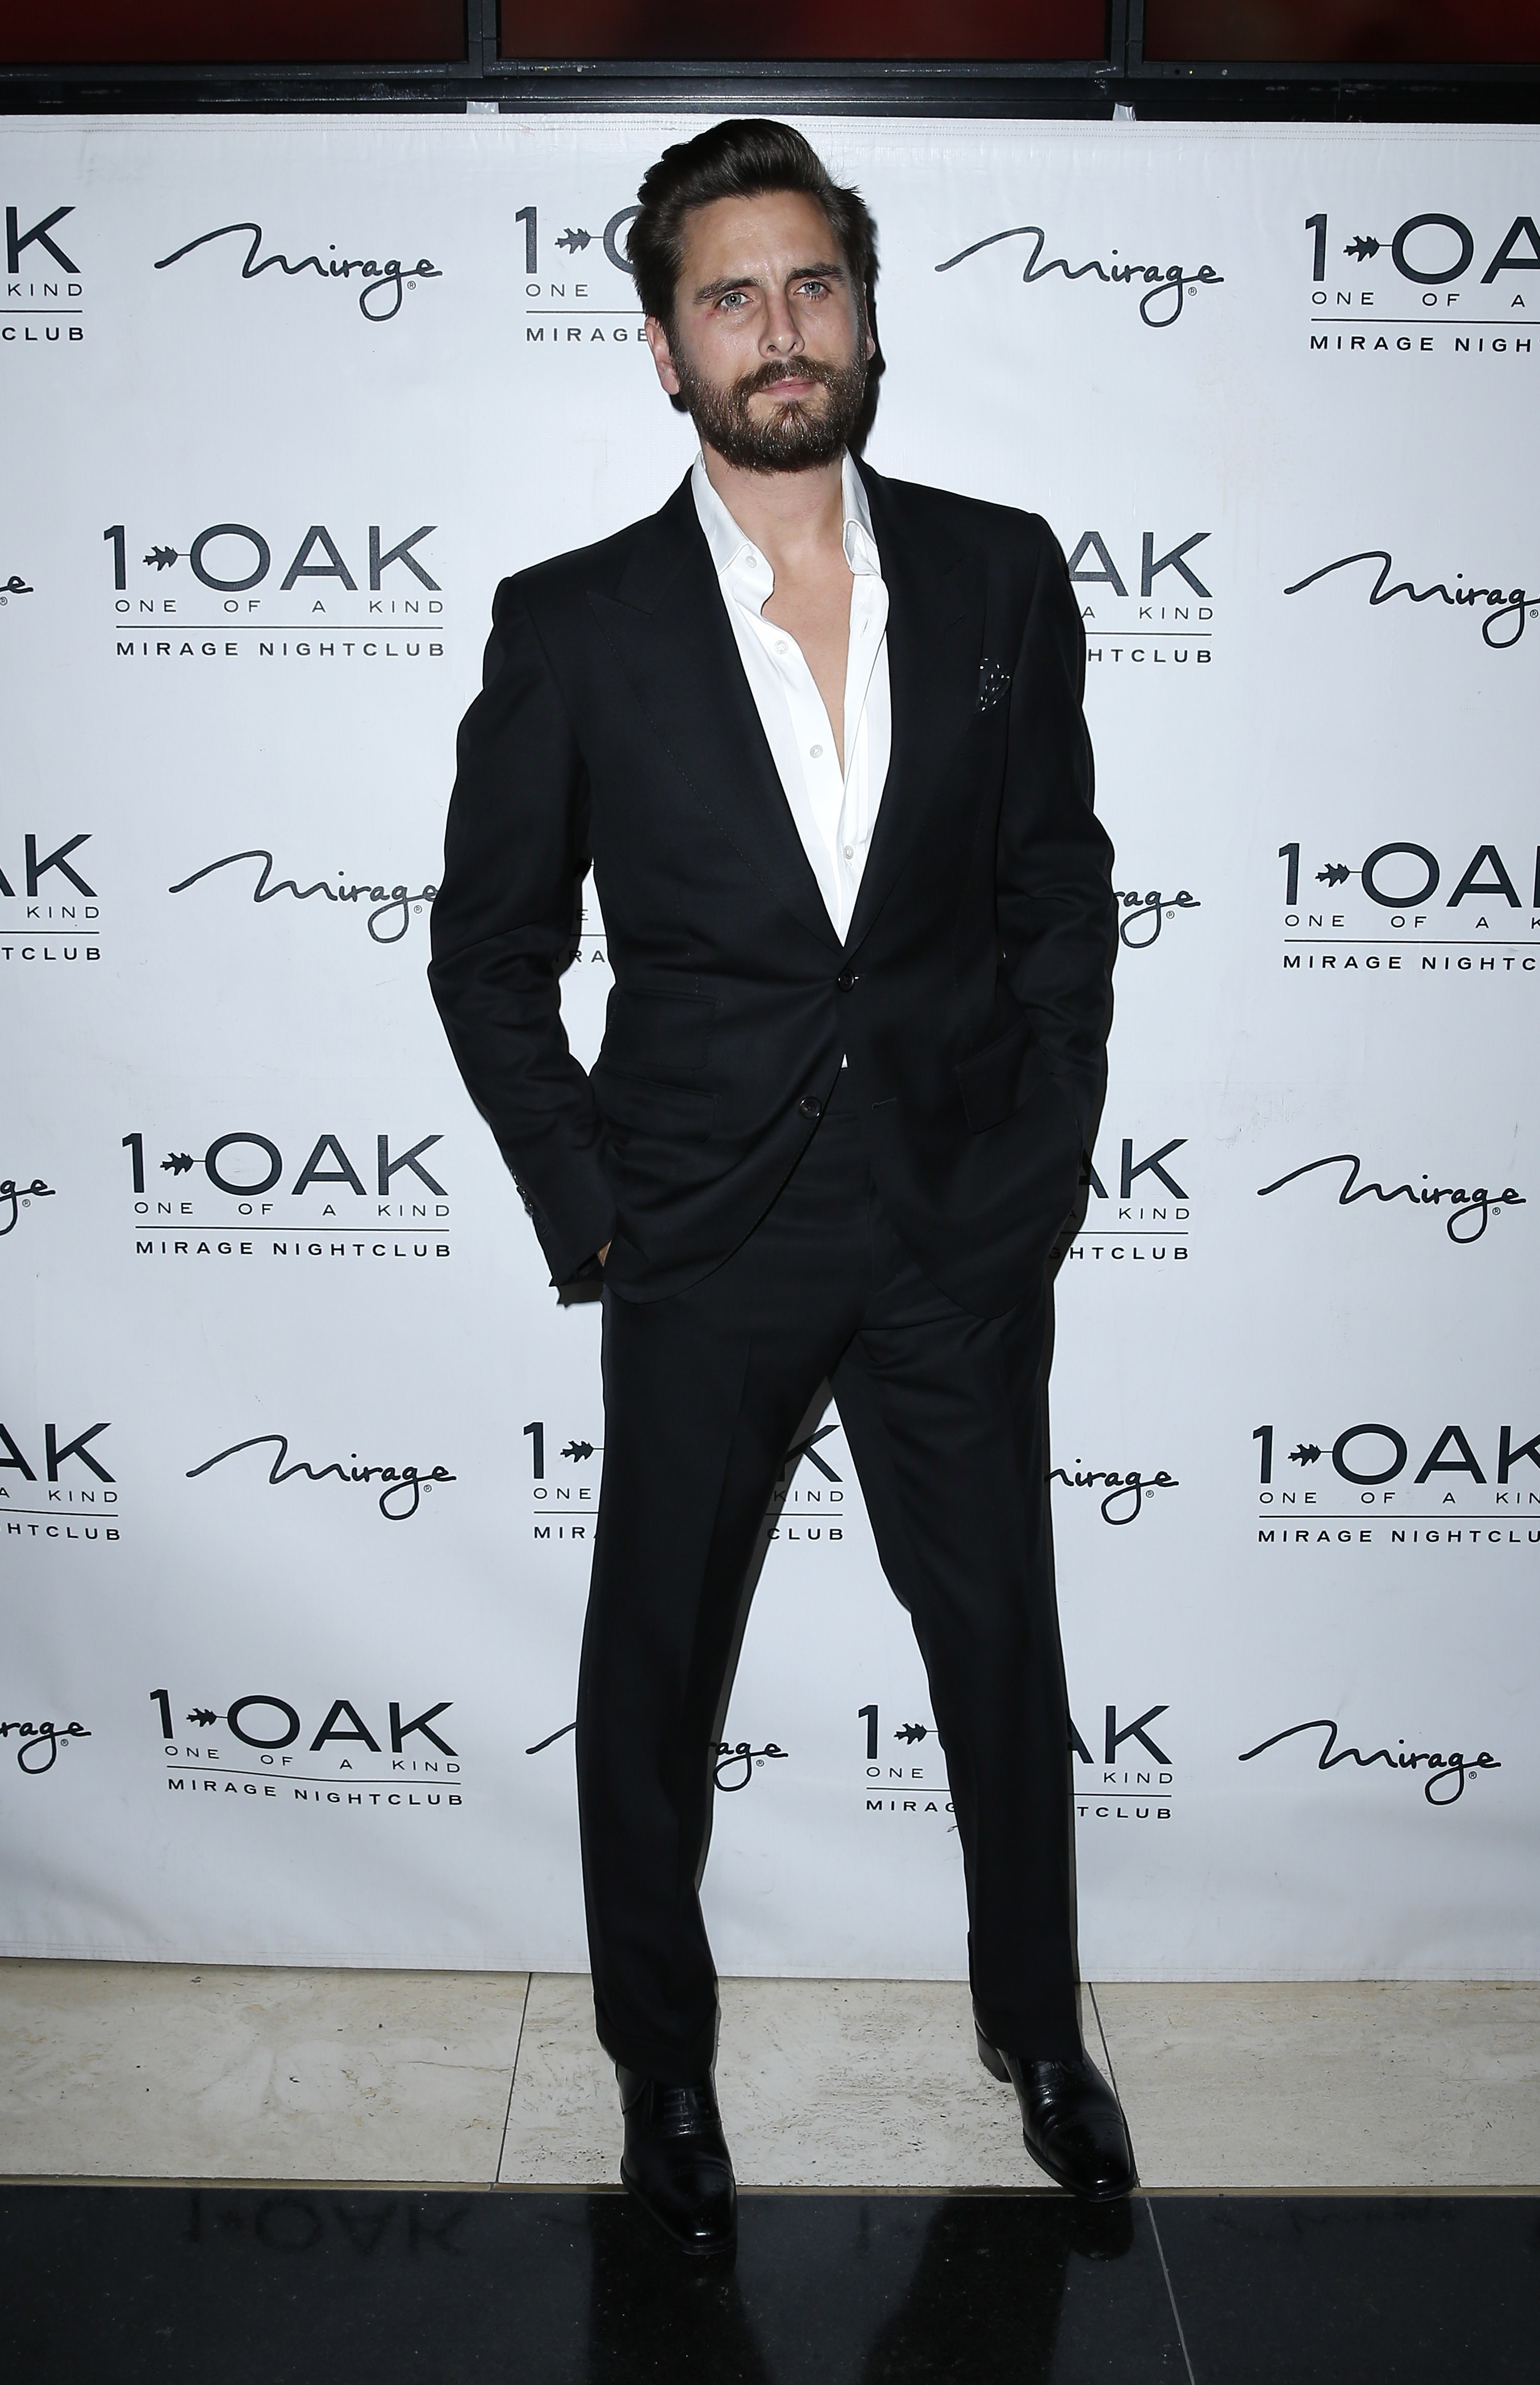 Scott Disick wants $500k to do 'DWTS'